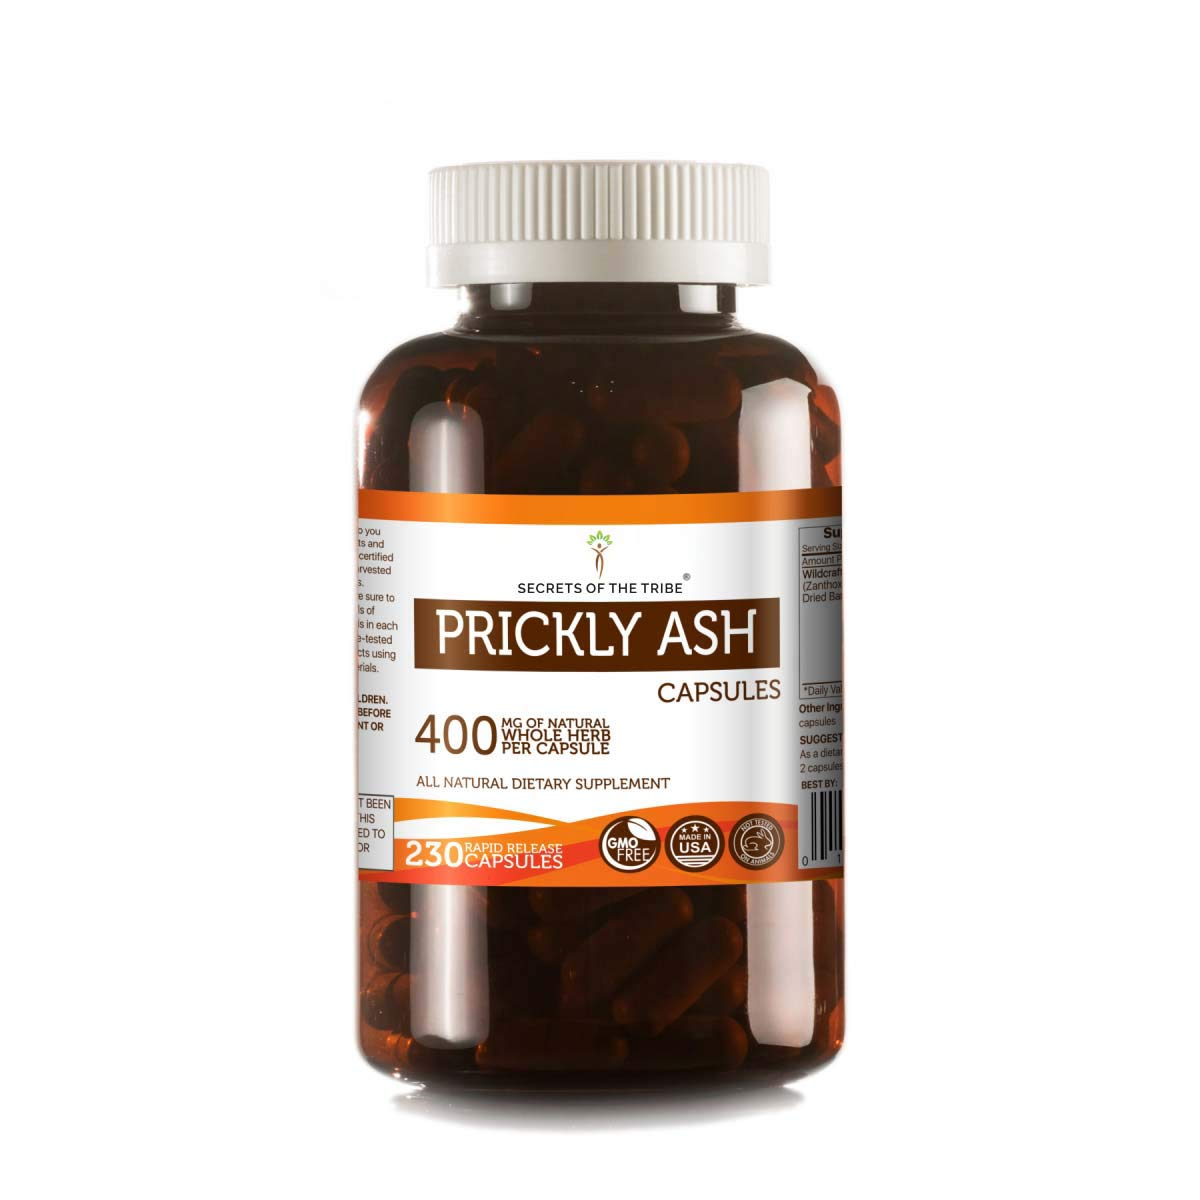 Prickly Ash 230 Capsules, 400 mg, Wildcrafted Prickly Ash (Zanthoxylum Clava-herculis) Dried Bark (230 Capsules) by Secrets of the Tribe